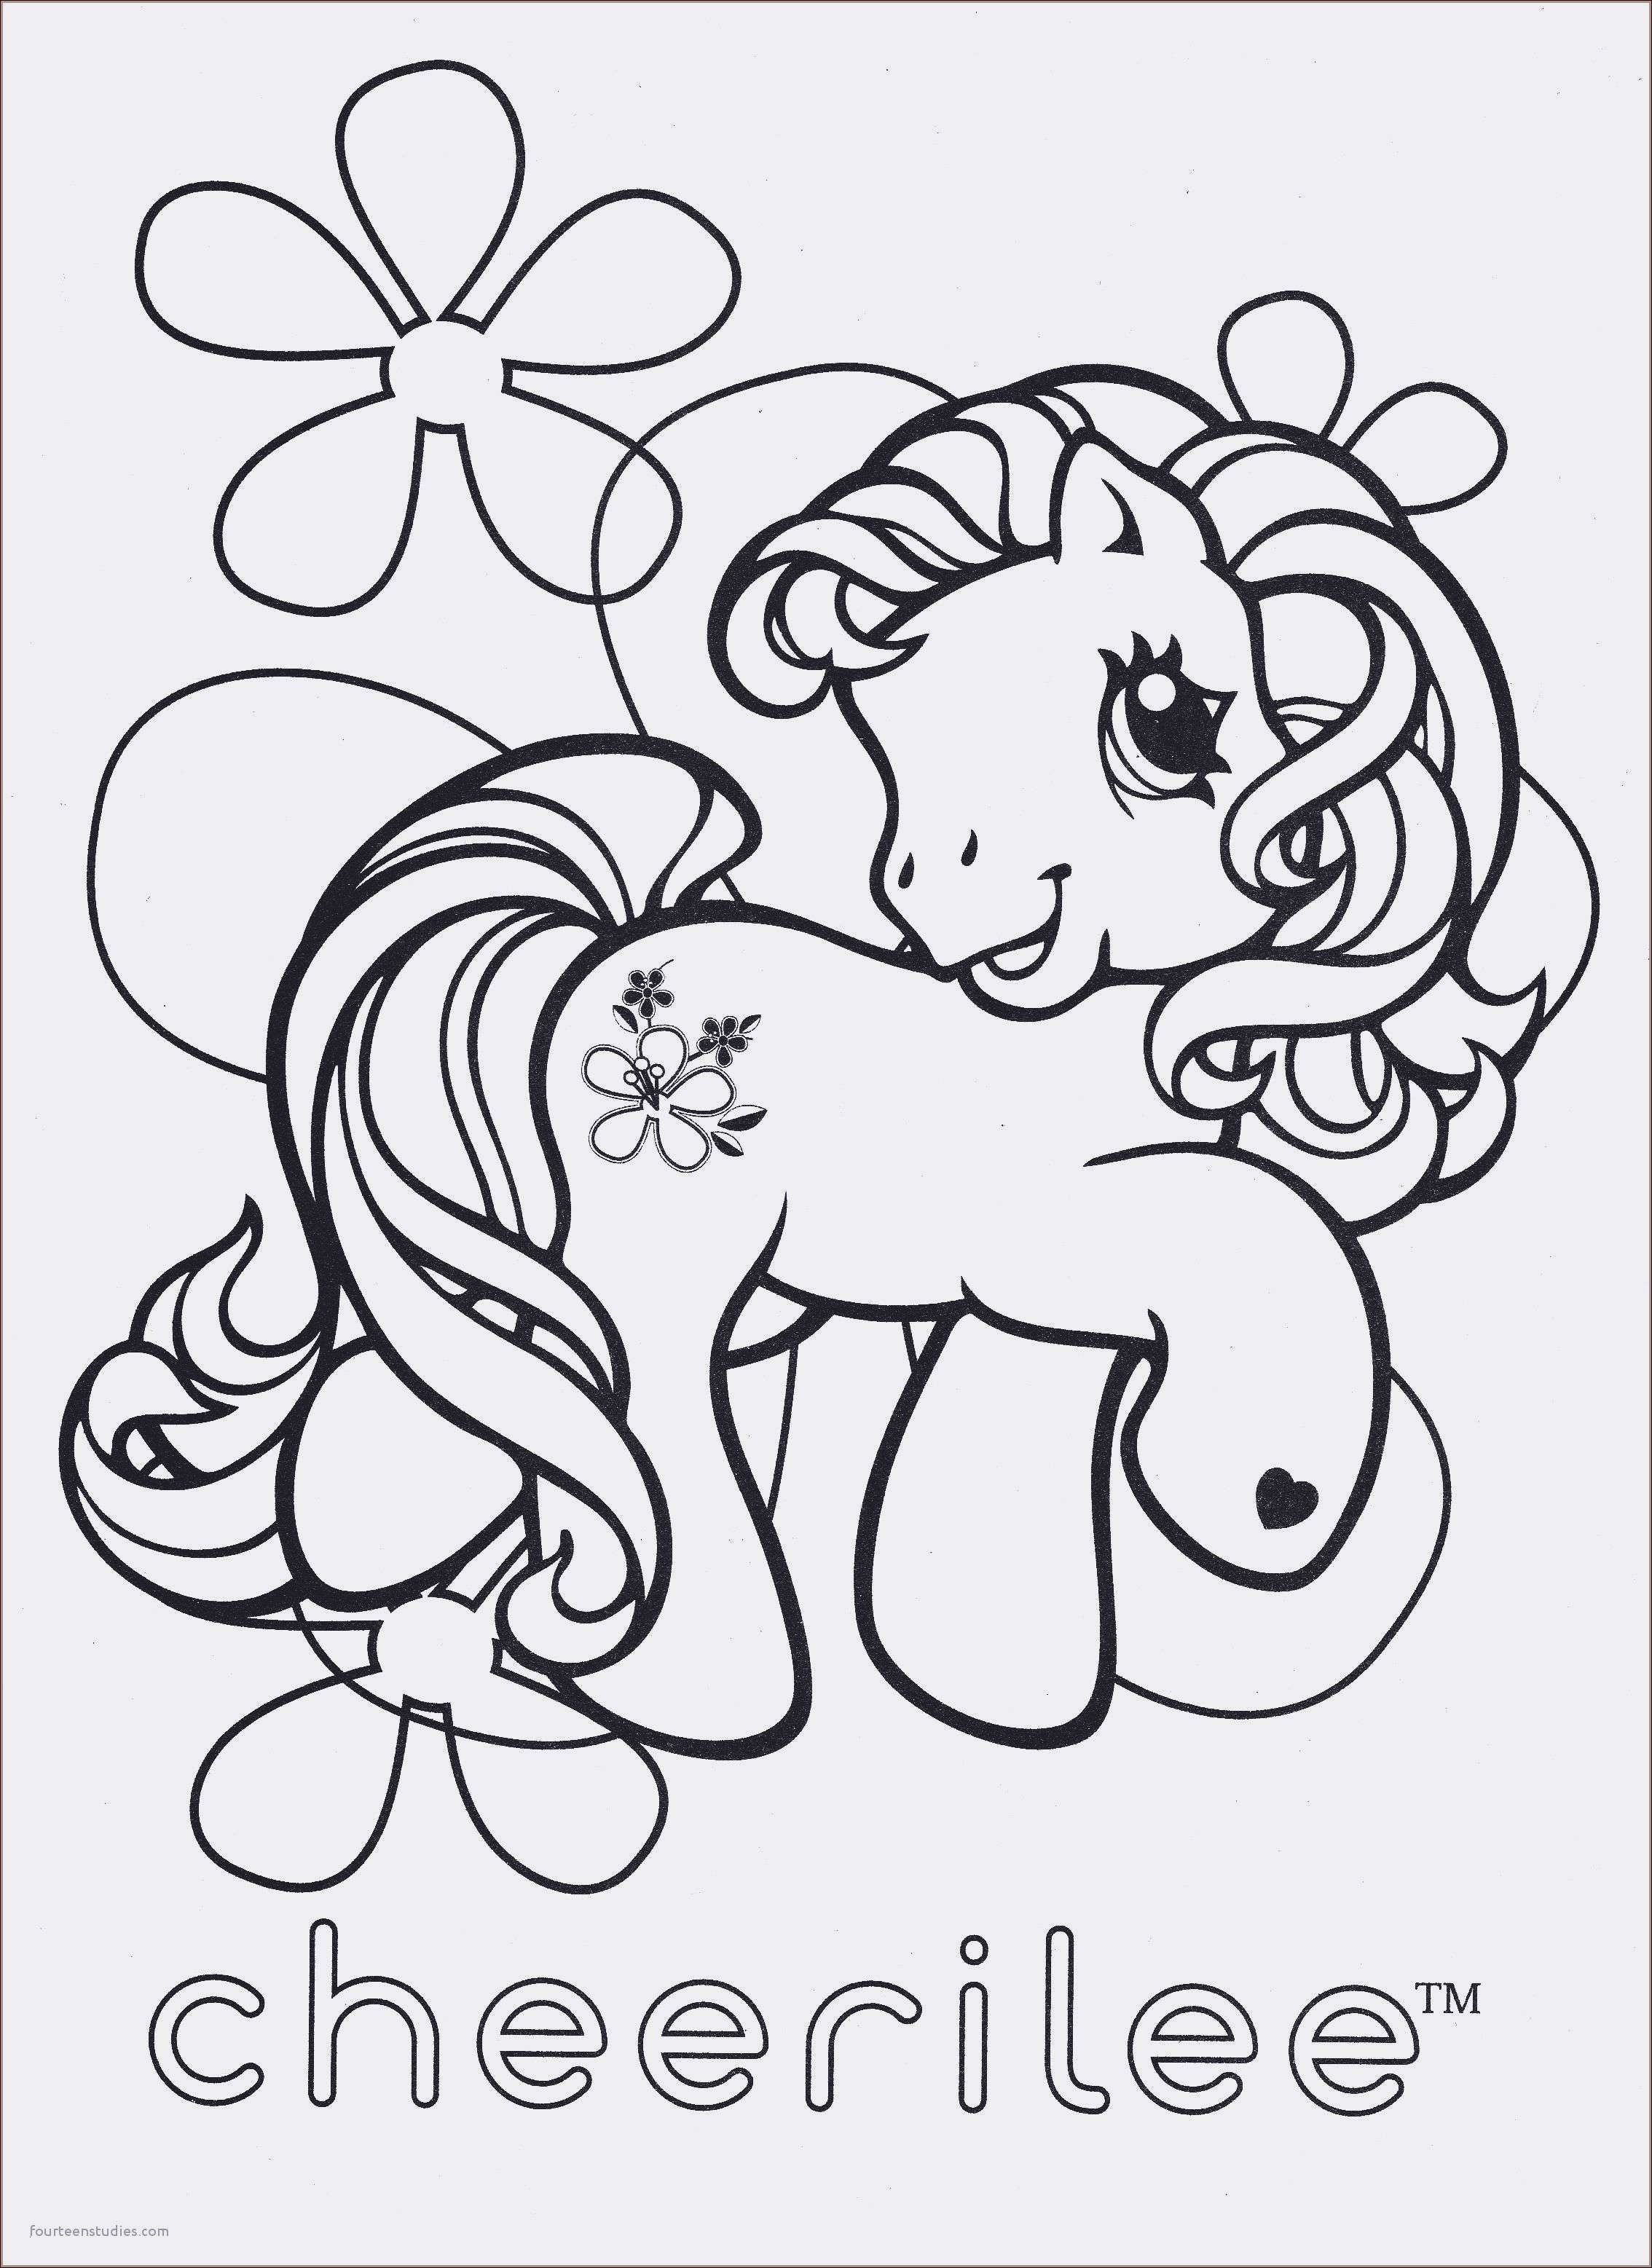 blaze coloring pages Collection-Spannende Coloring Bilder Ausmalbilder sonic Neu Ausmalbilder Blaze 7-i